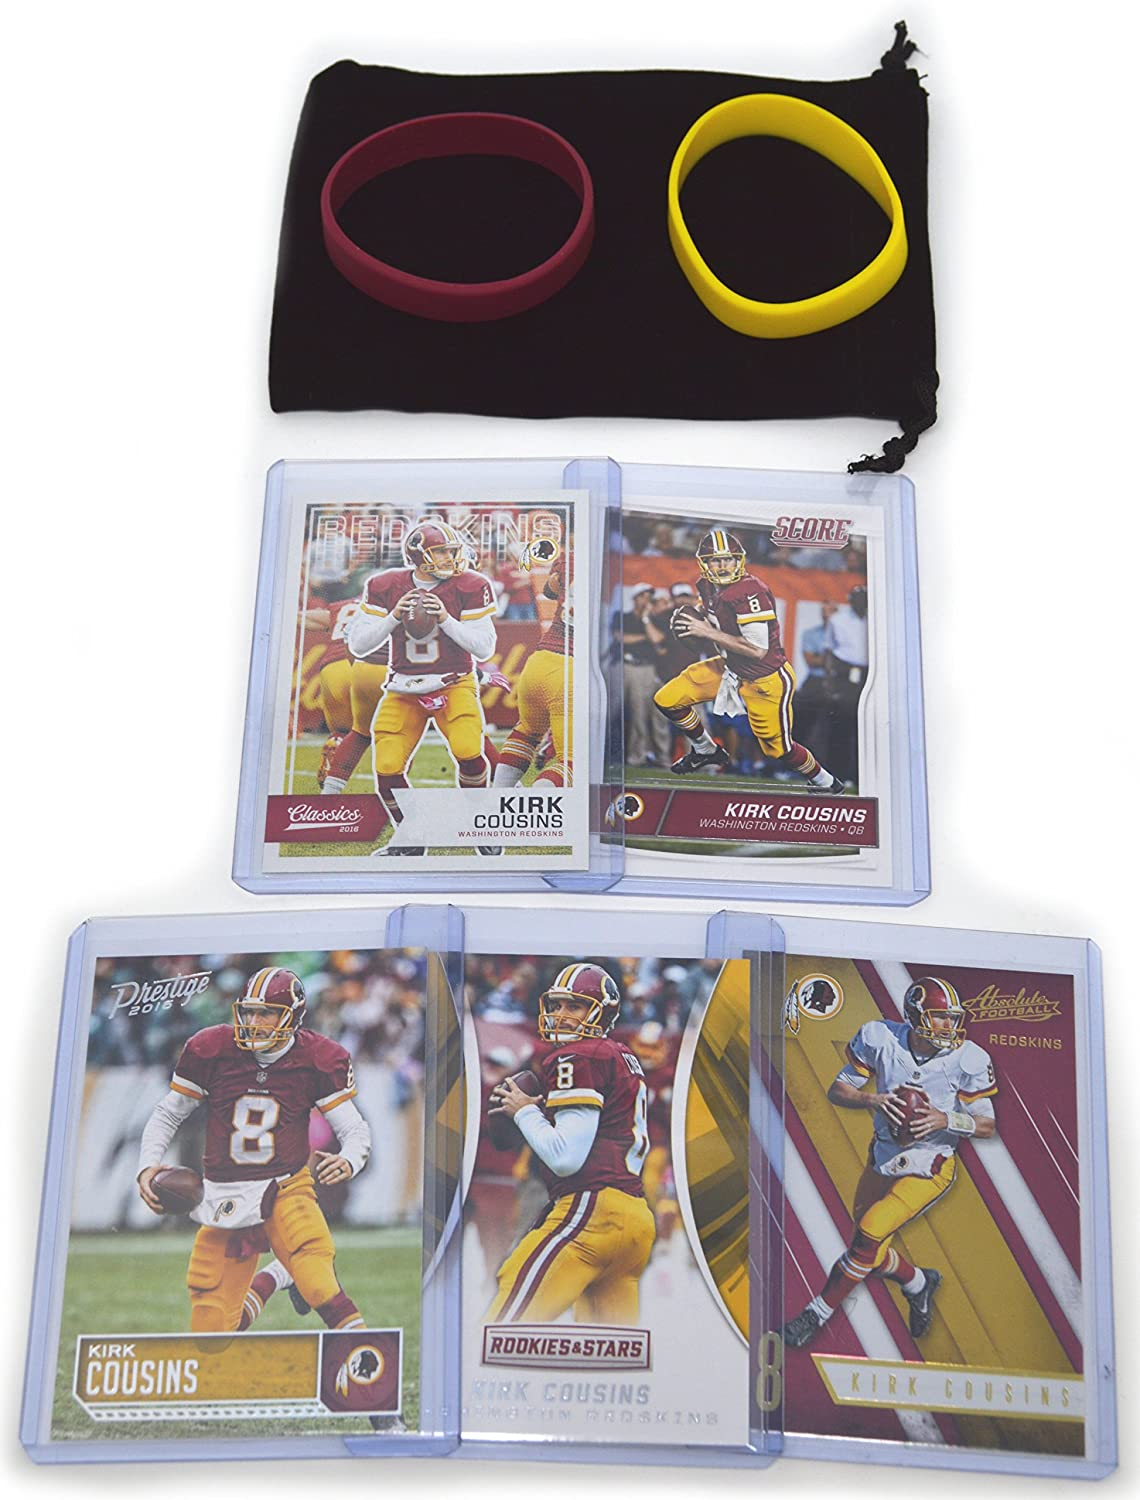 Kirk Cousins Football Cards Assorted (5) Bundle - Washington Redskins Trading Cards Panini Bowman Topps